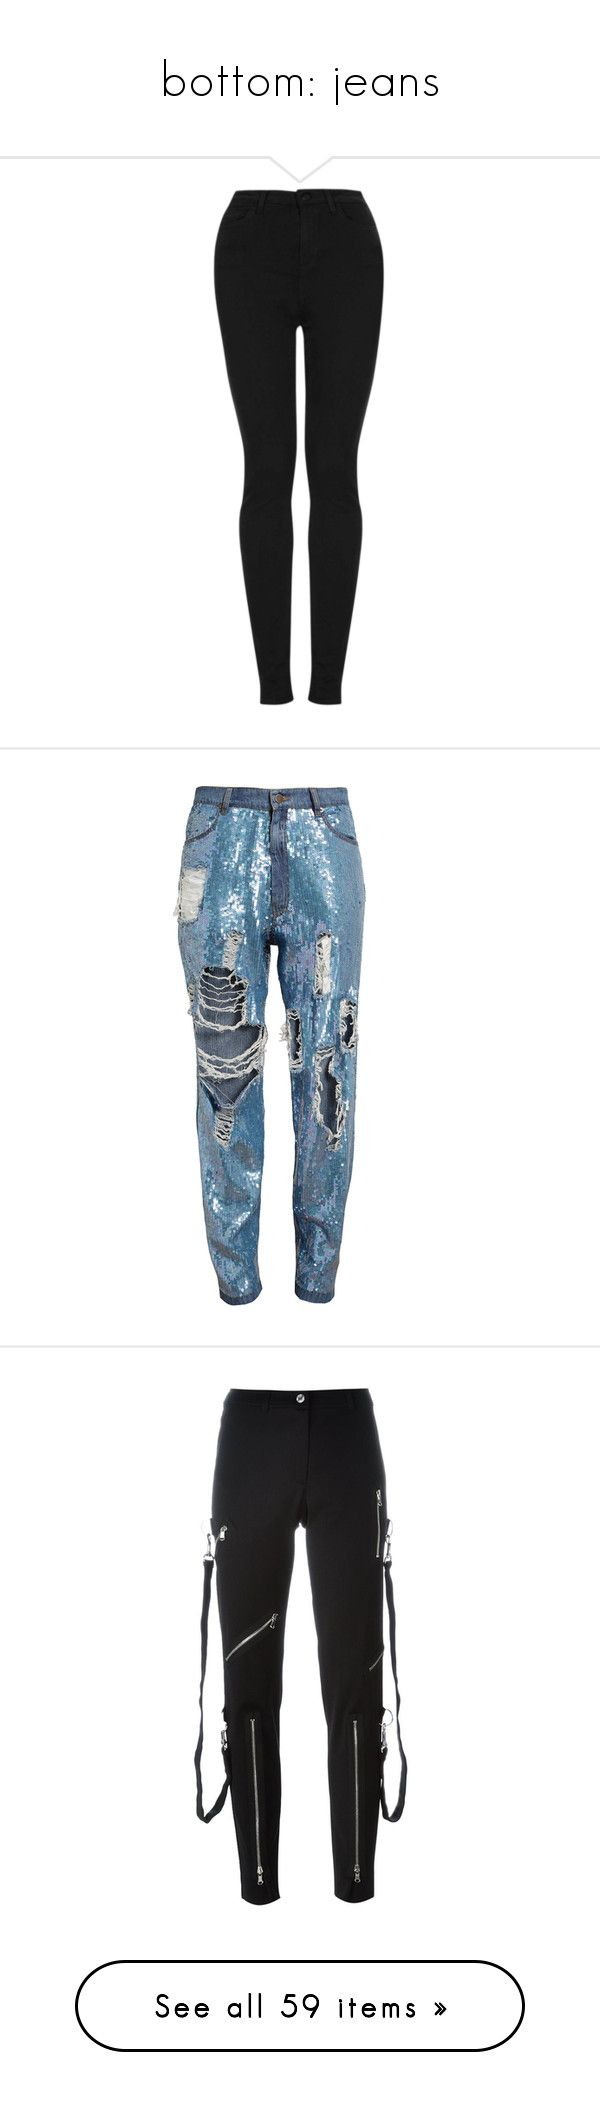 """""""bottom: jeans"""" by blackangels-official ❤ liked on Polyvore featuring jeans, pants, bottoms, jeans/pants, black, high rise skinny jeans, topshop skinny jeans, high waisted stretch jeans, highwaist jeans and tall jeans"""